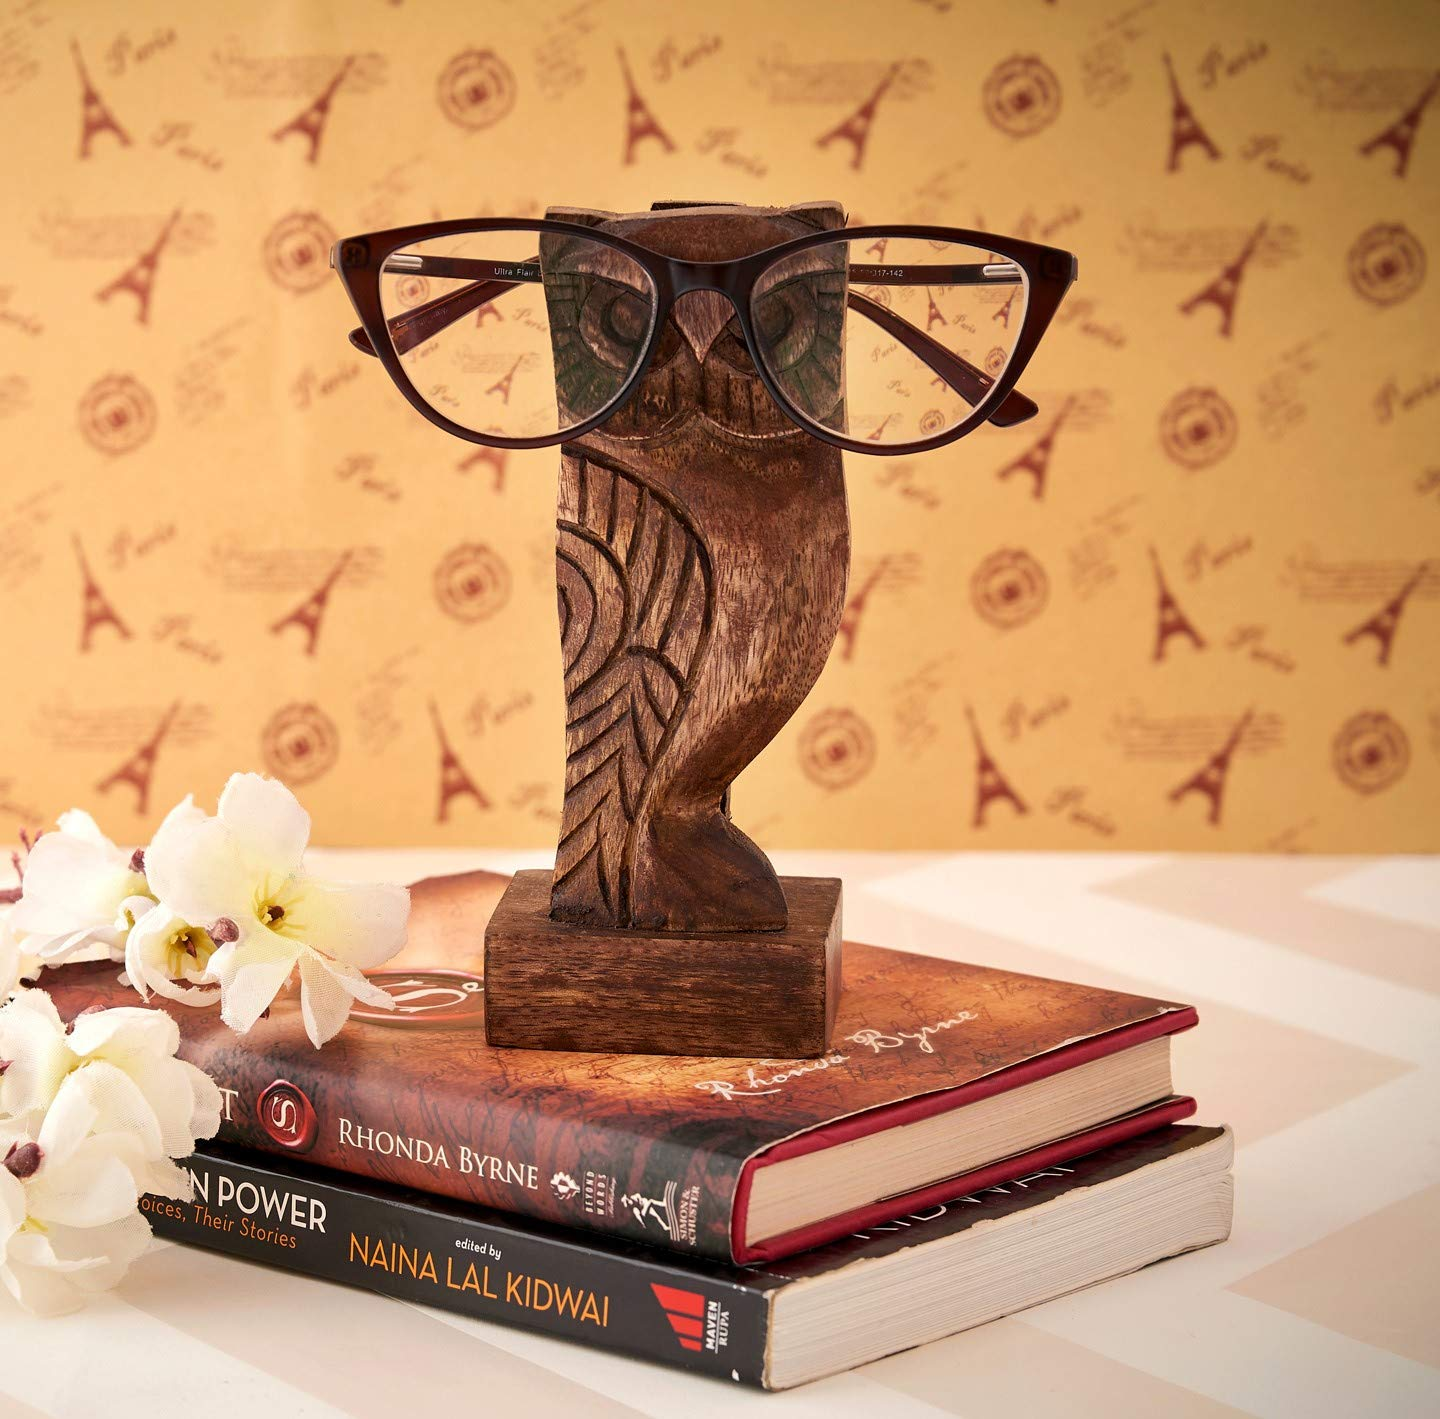 Eximious India Owl Eyeglass Holder Spectacle Holder Wooden Handmade Bedside Display Home and Office Decor Desk Eyeglasses Holder Glasses Gifts for Kids Him Her Mom Dad Eyeglass Retainers for Men